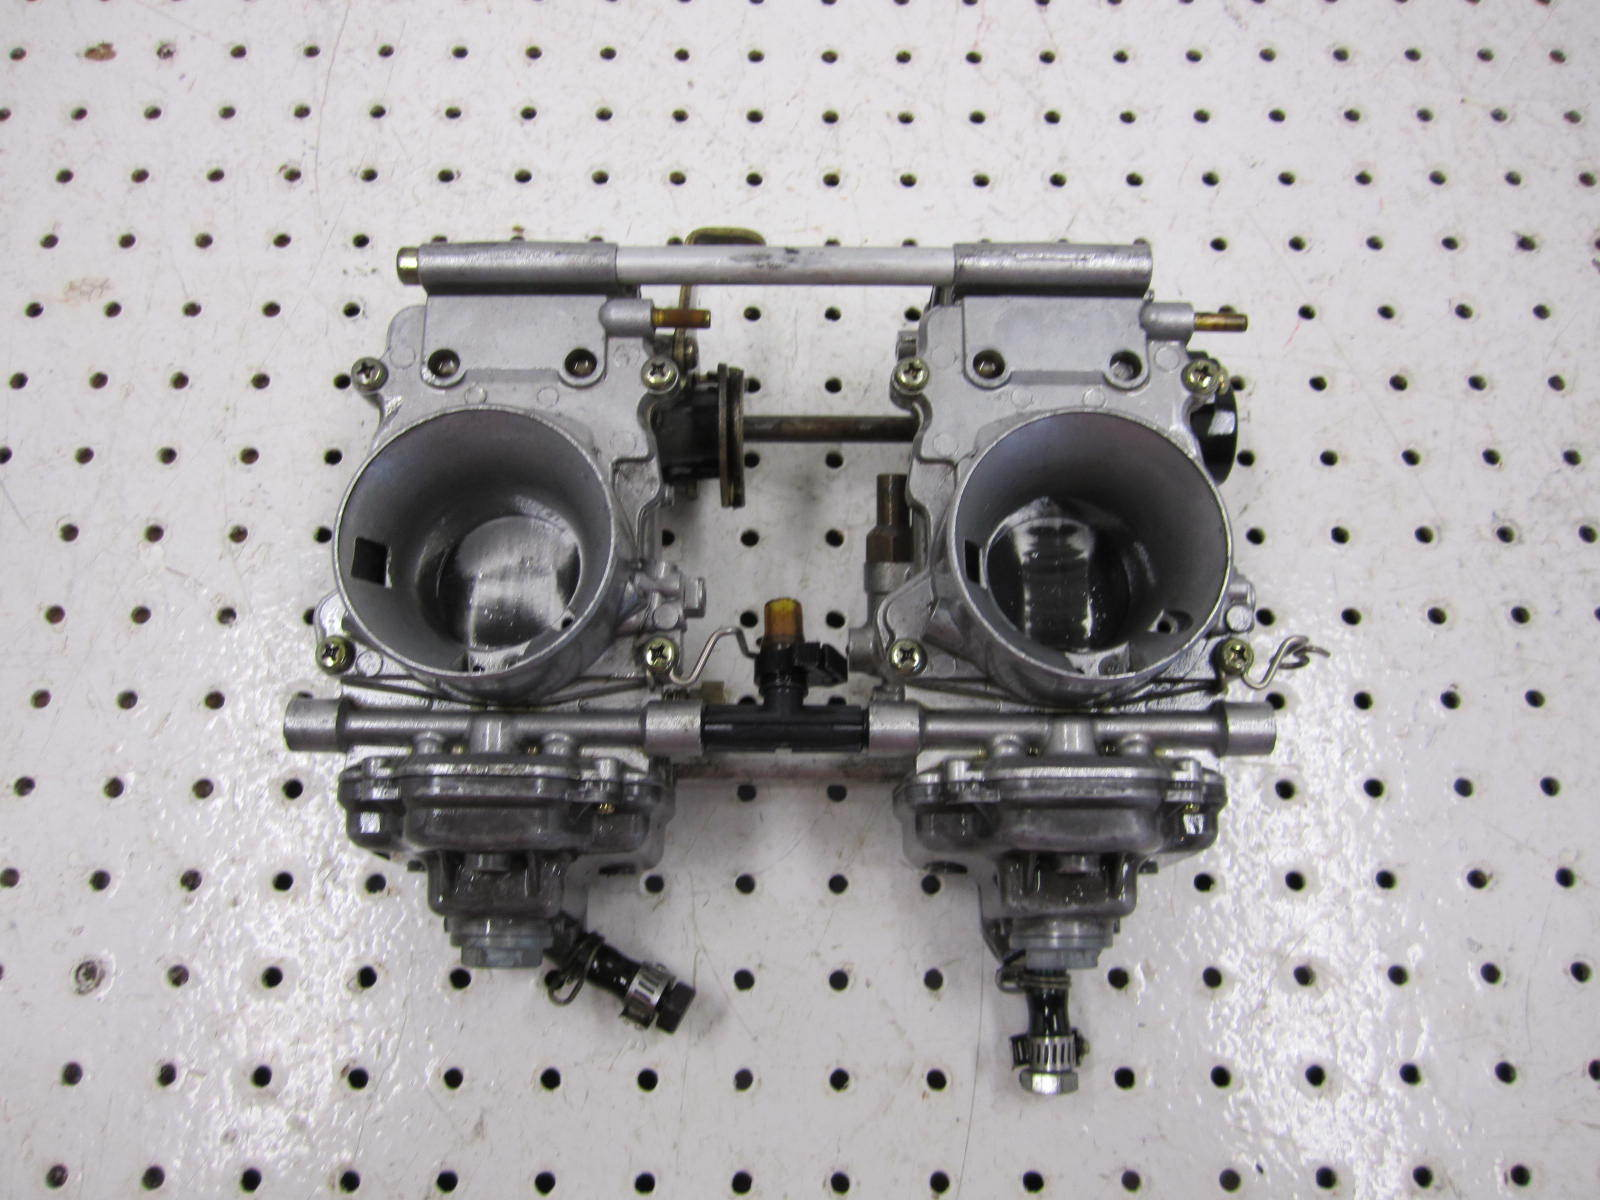 2002 ARCTIC CAT ZR 500 CARBS CARBURETOR 1670-138